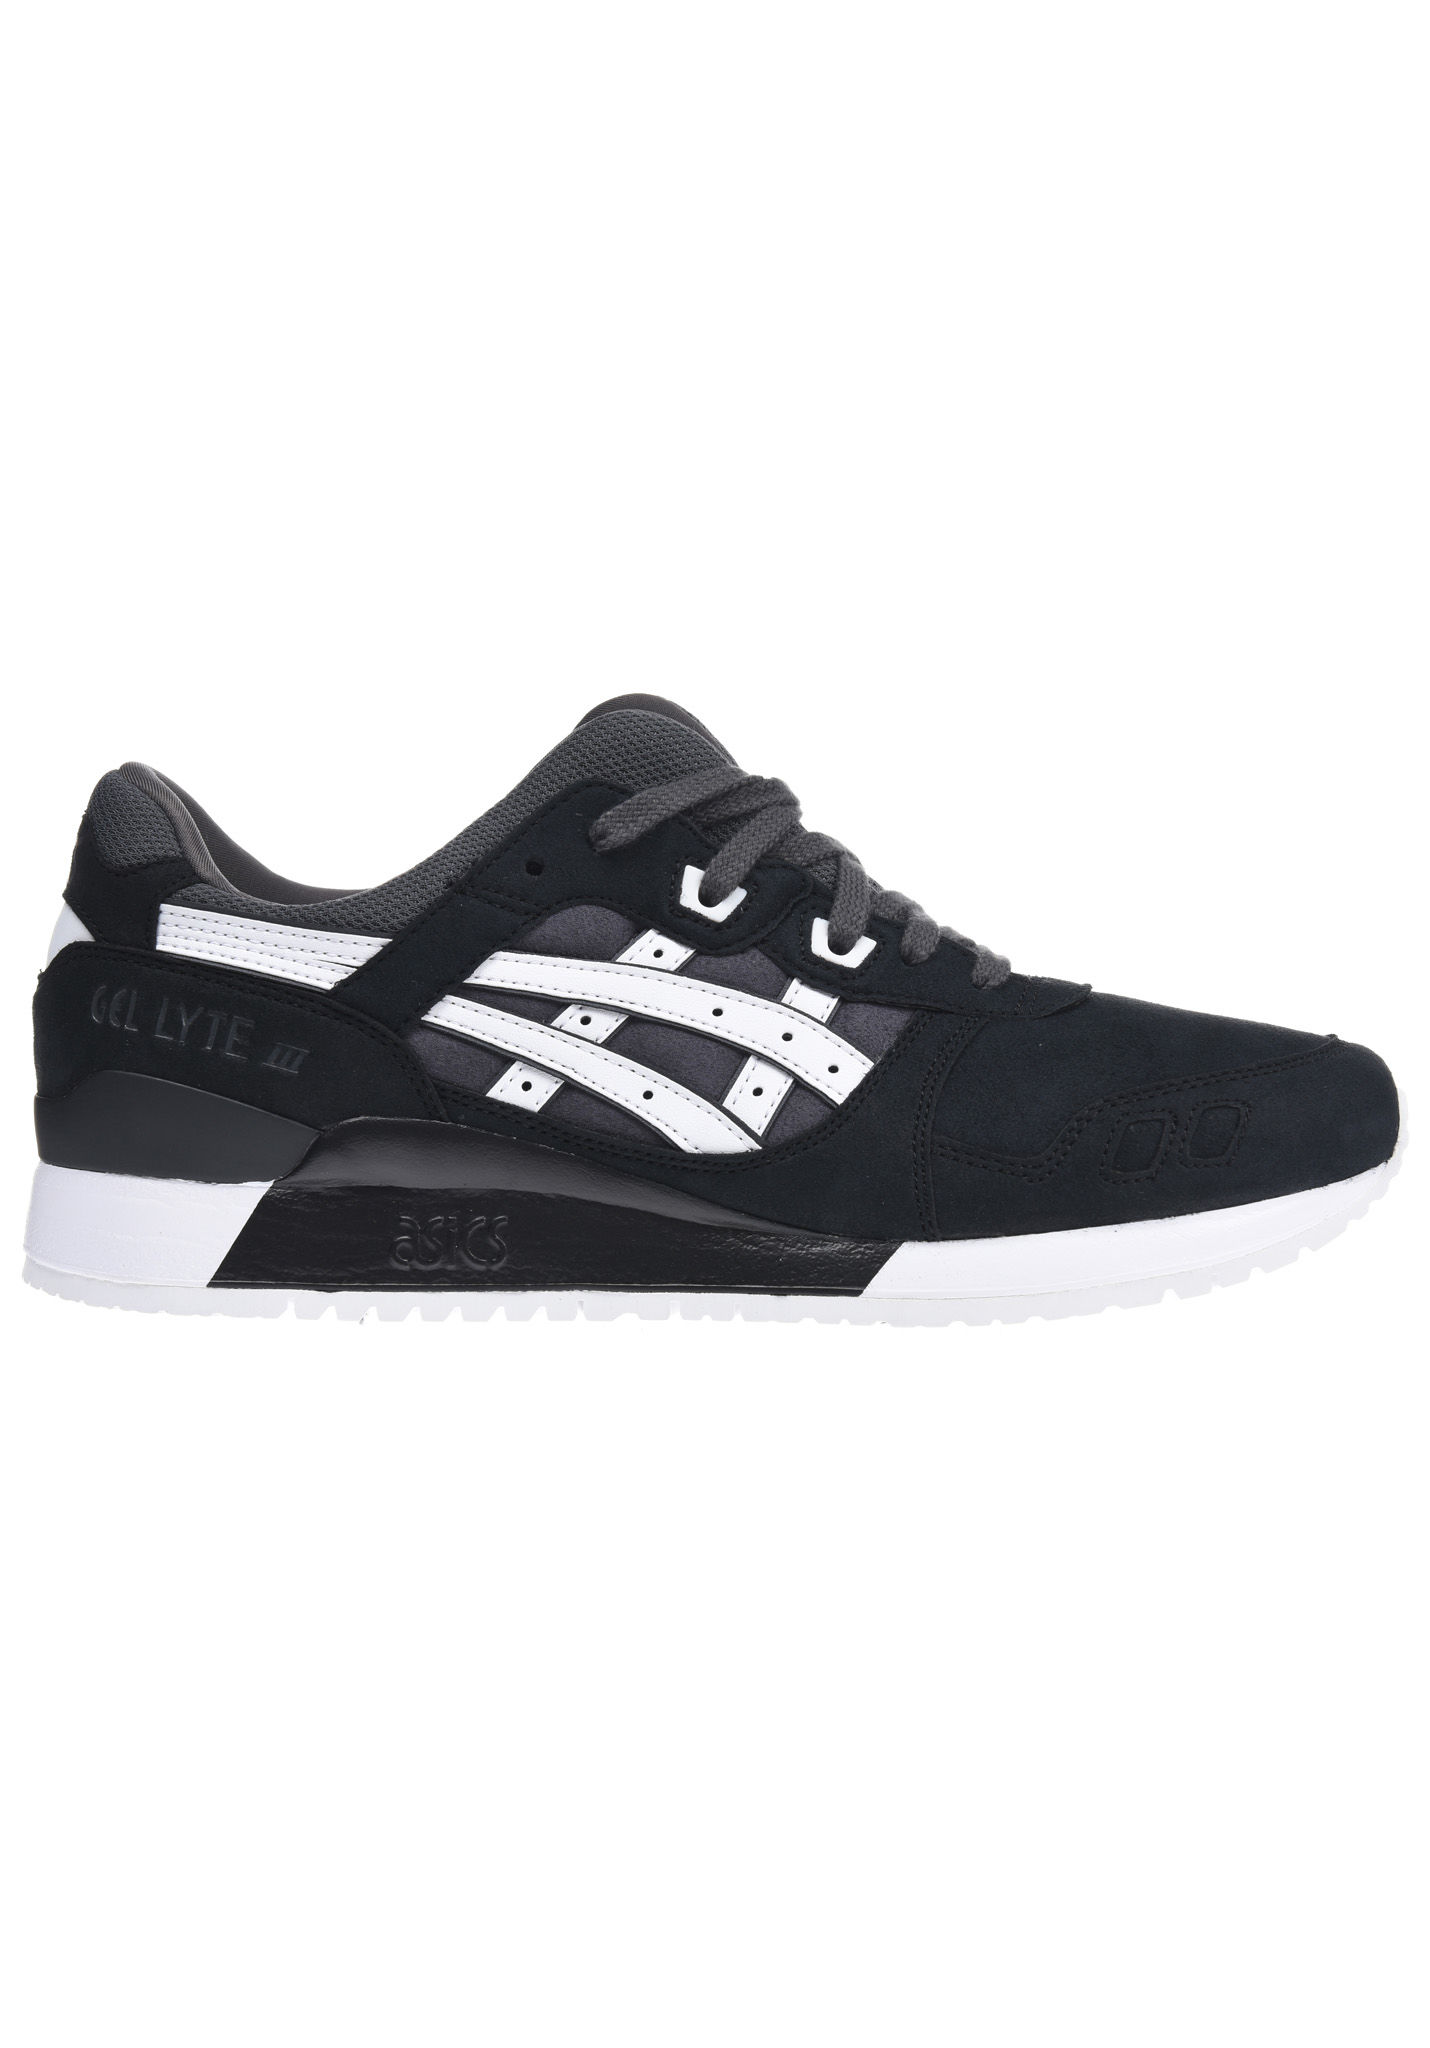 2a1f37194454 Asics Tiger Gel-Lyte III - Sneakers for Men - Black - Planet Sports